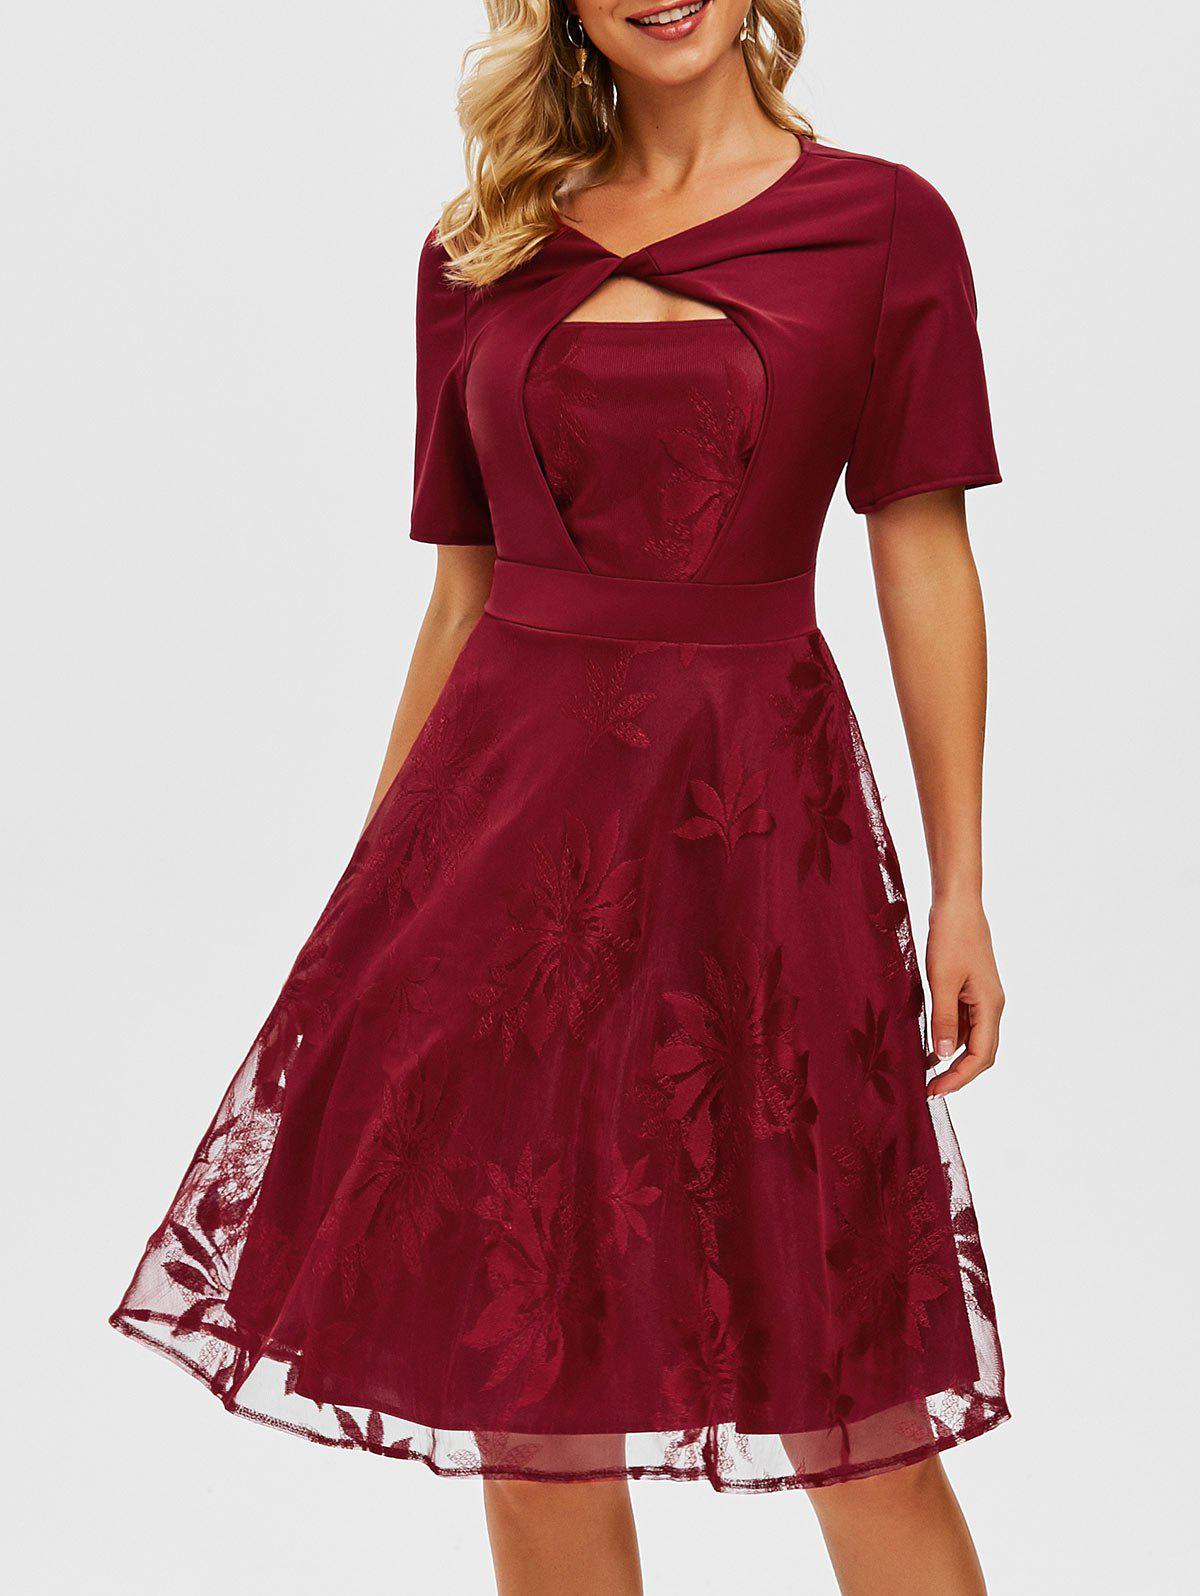 Lace Overlay Twisted Keyhole Dress - RED 2XL